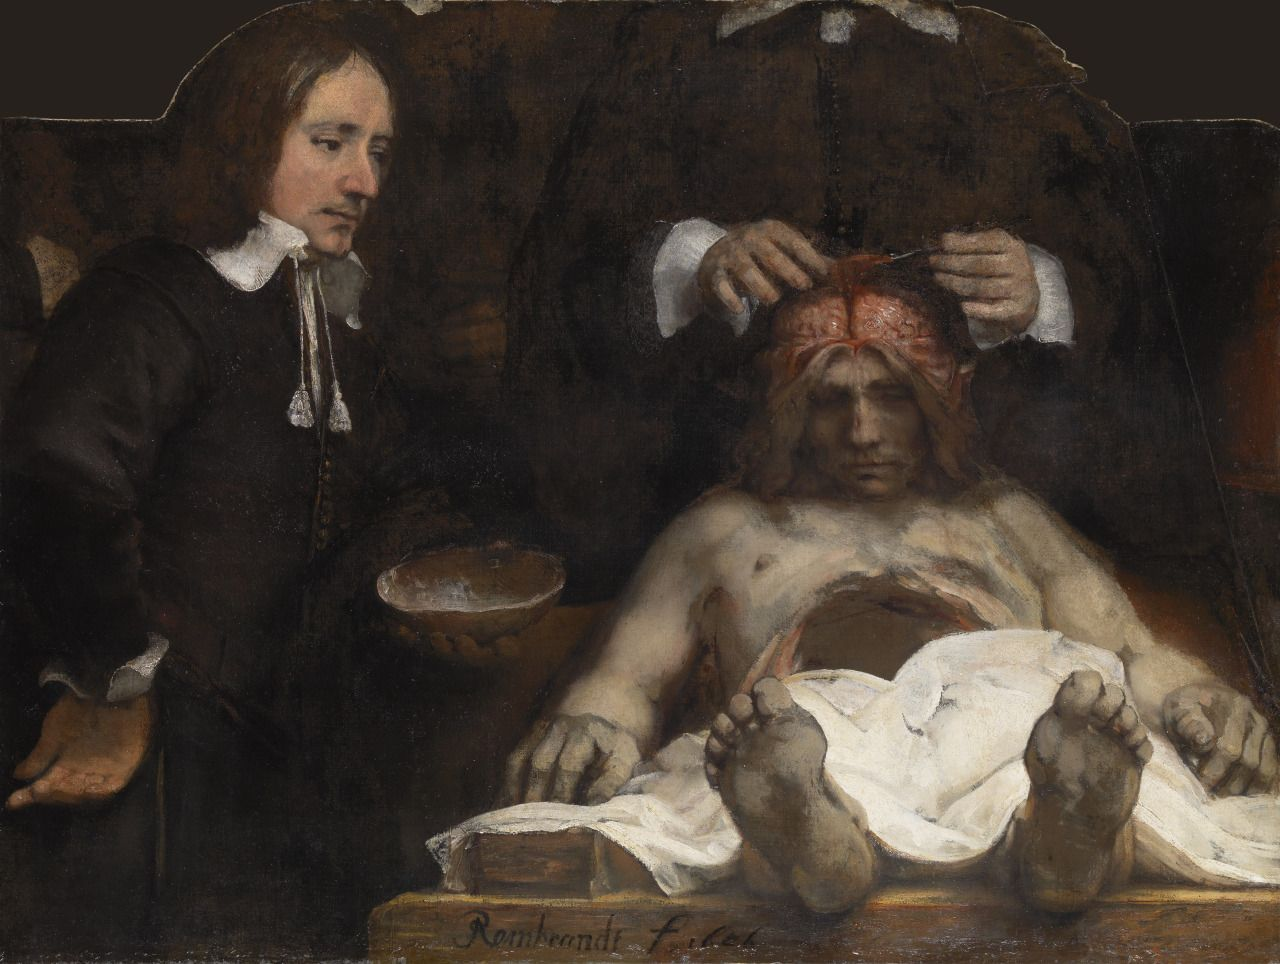 """Rembrandt """"Anatomy Lesson of Dr. Jan Deijman"""", 1656. 